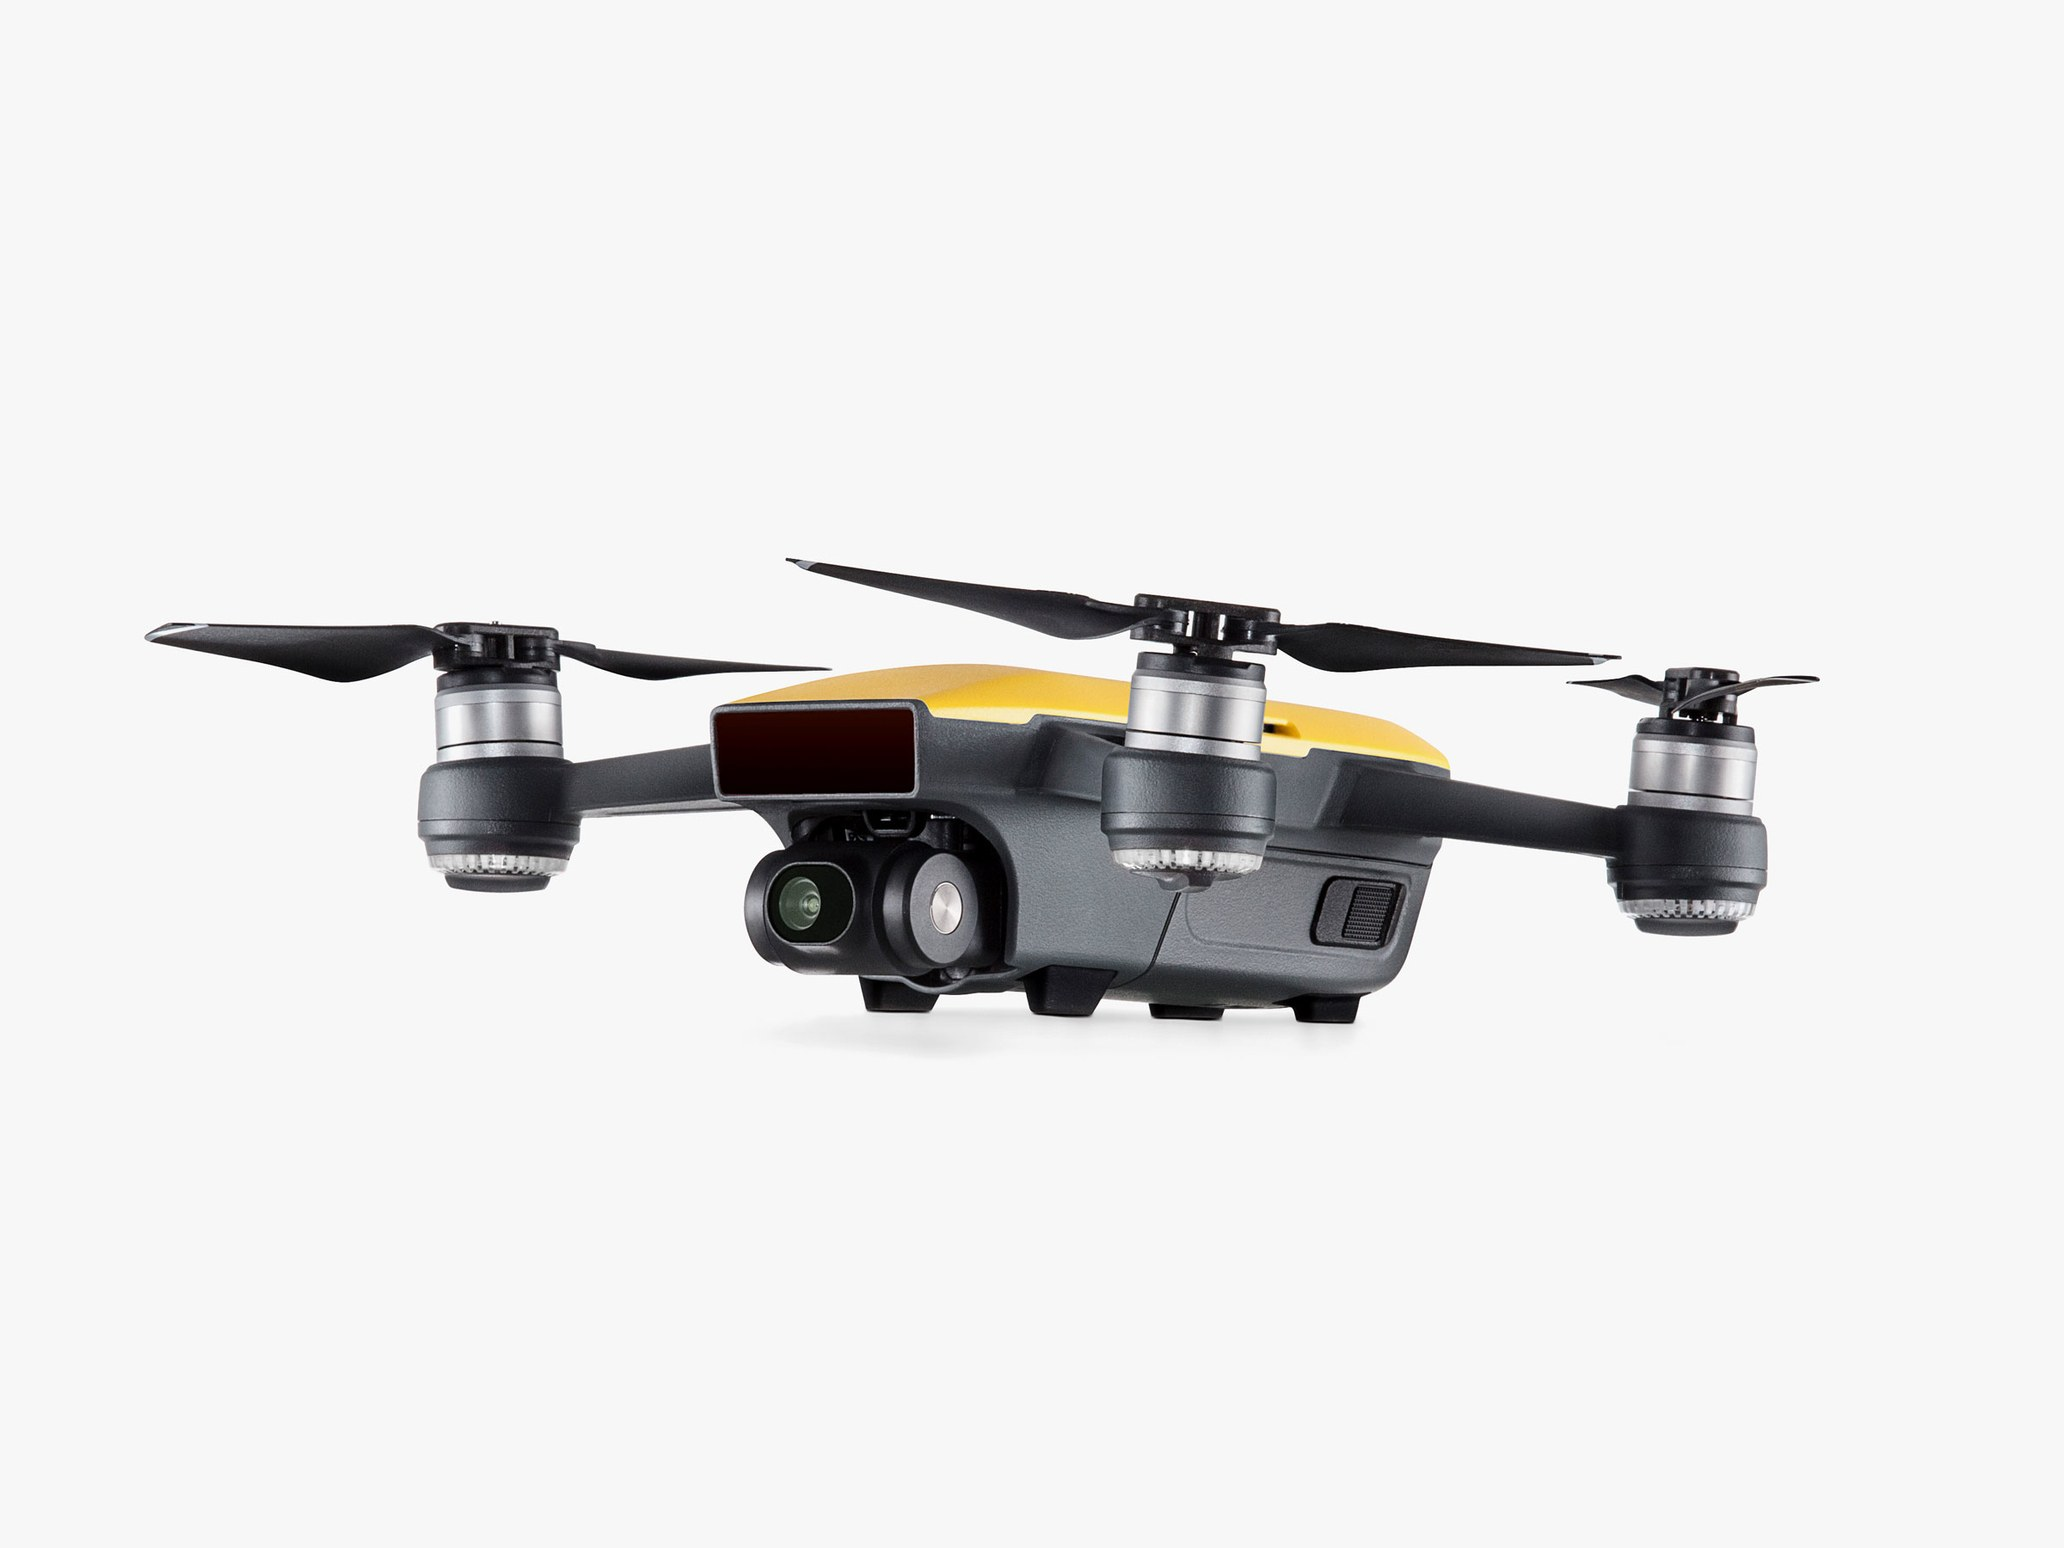 DJI Spark in yellow